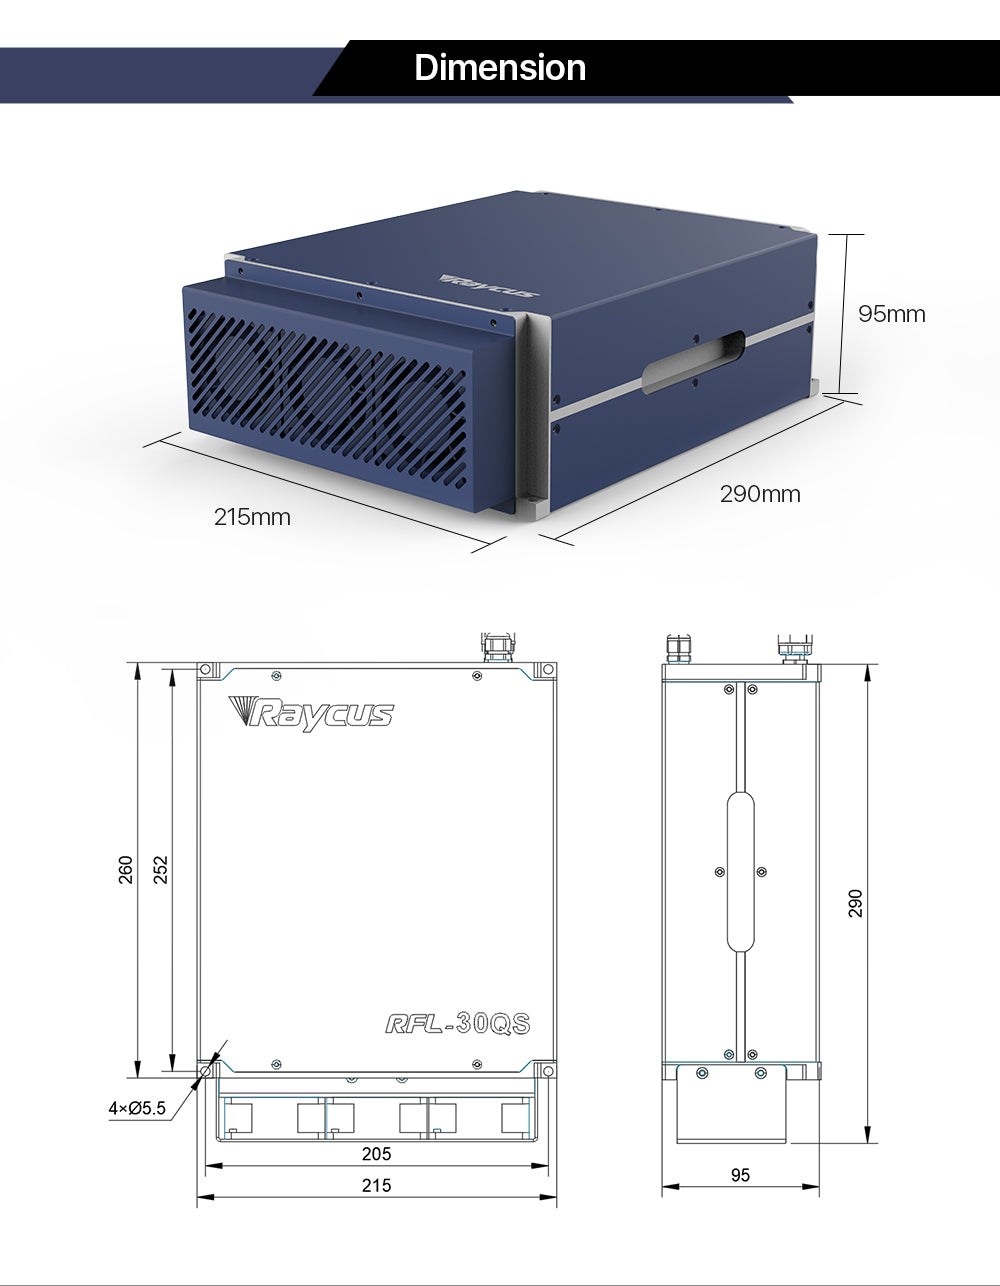 Raycus 20W-30W Q-switched Pulse Fiber Laser Source RFL-P20/30QS for 1064nm Laser Marking Machine